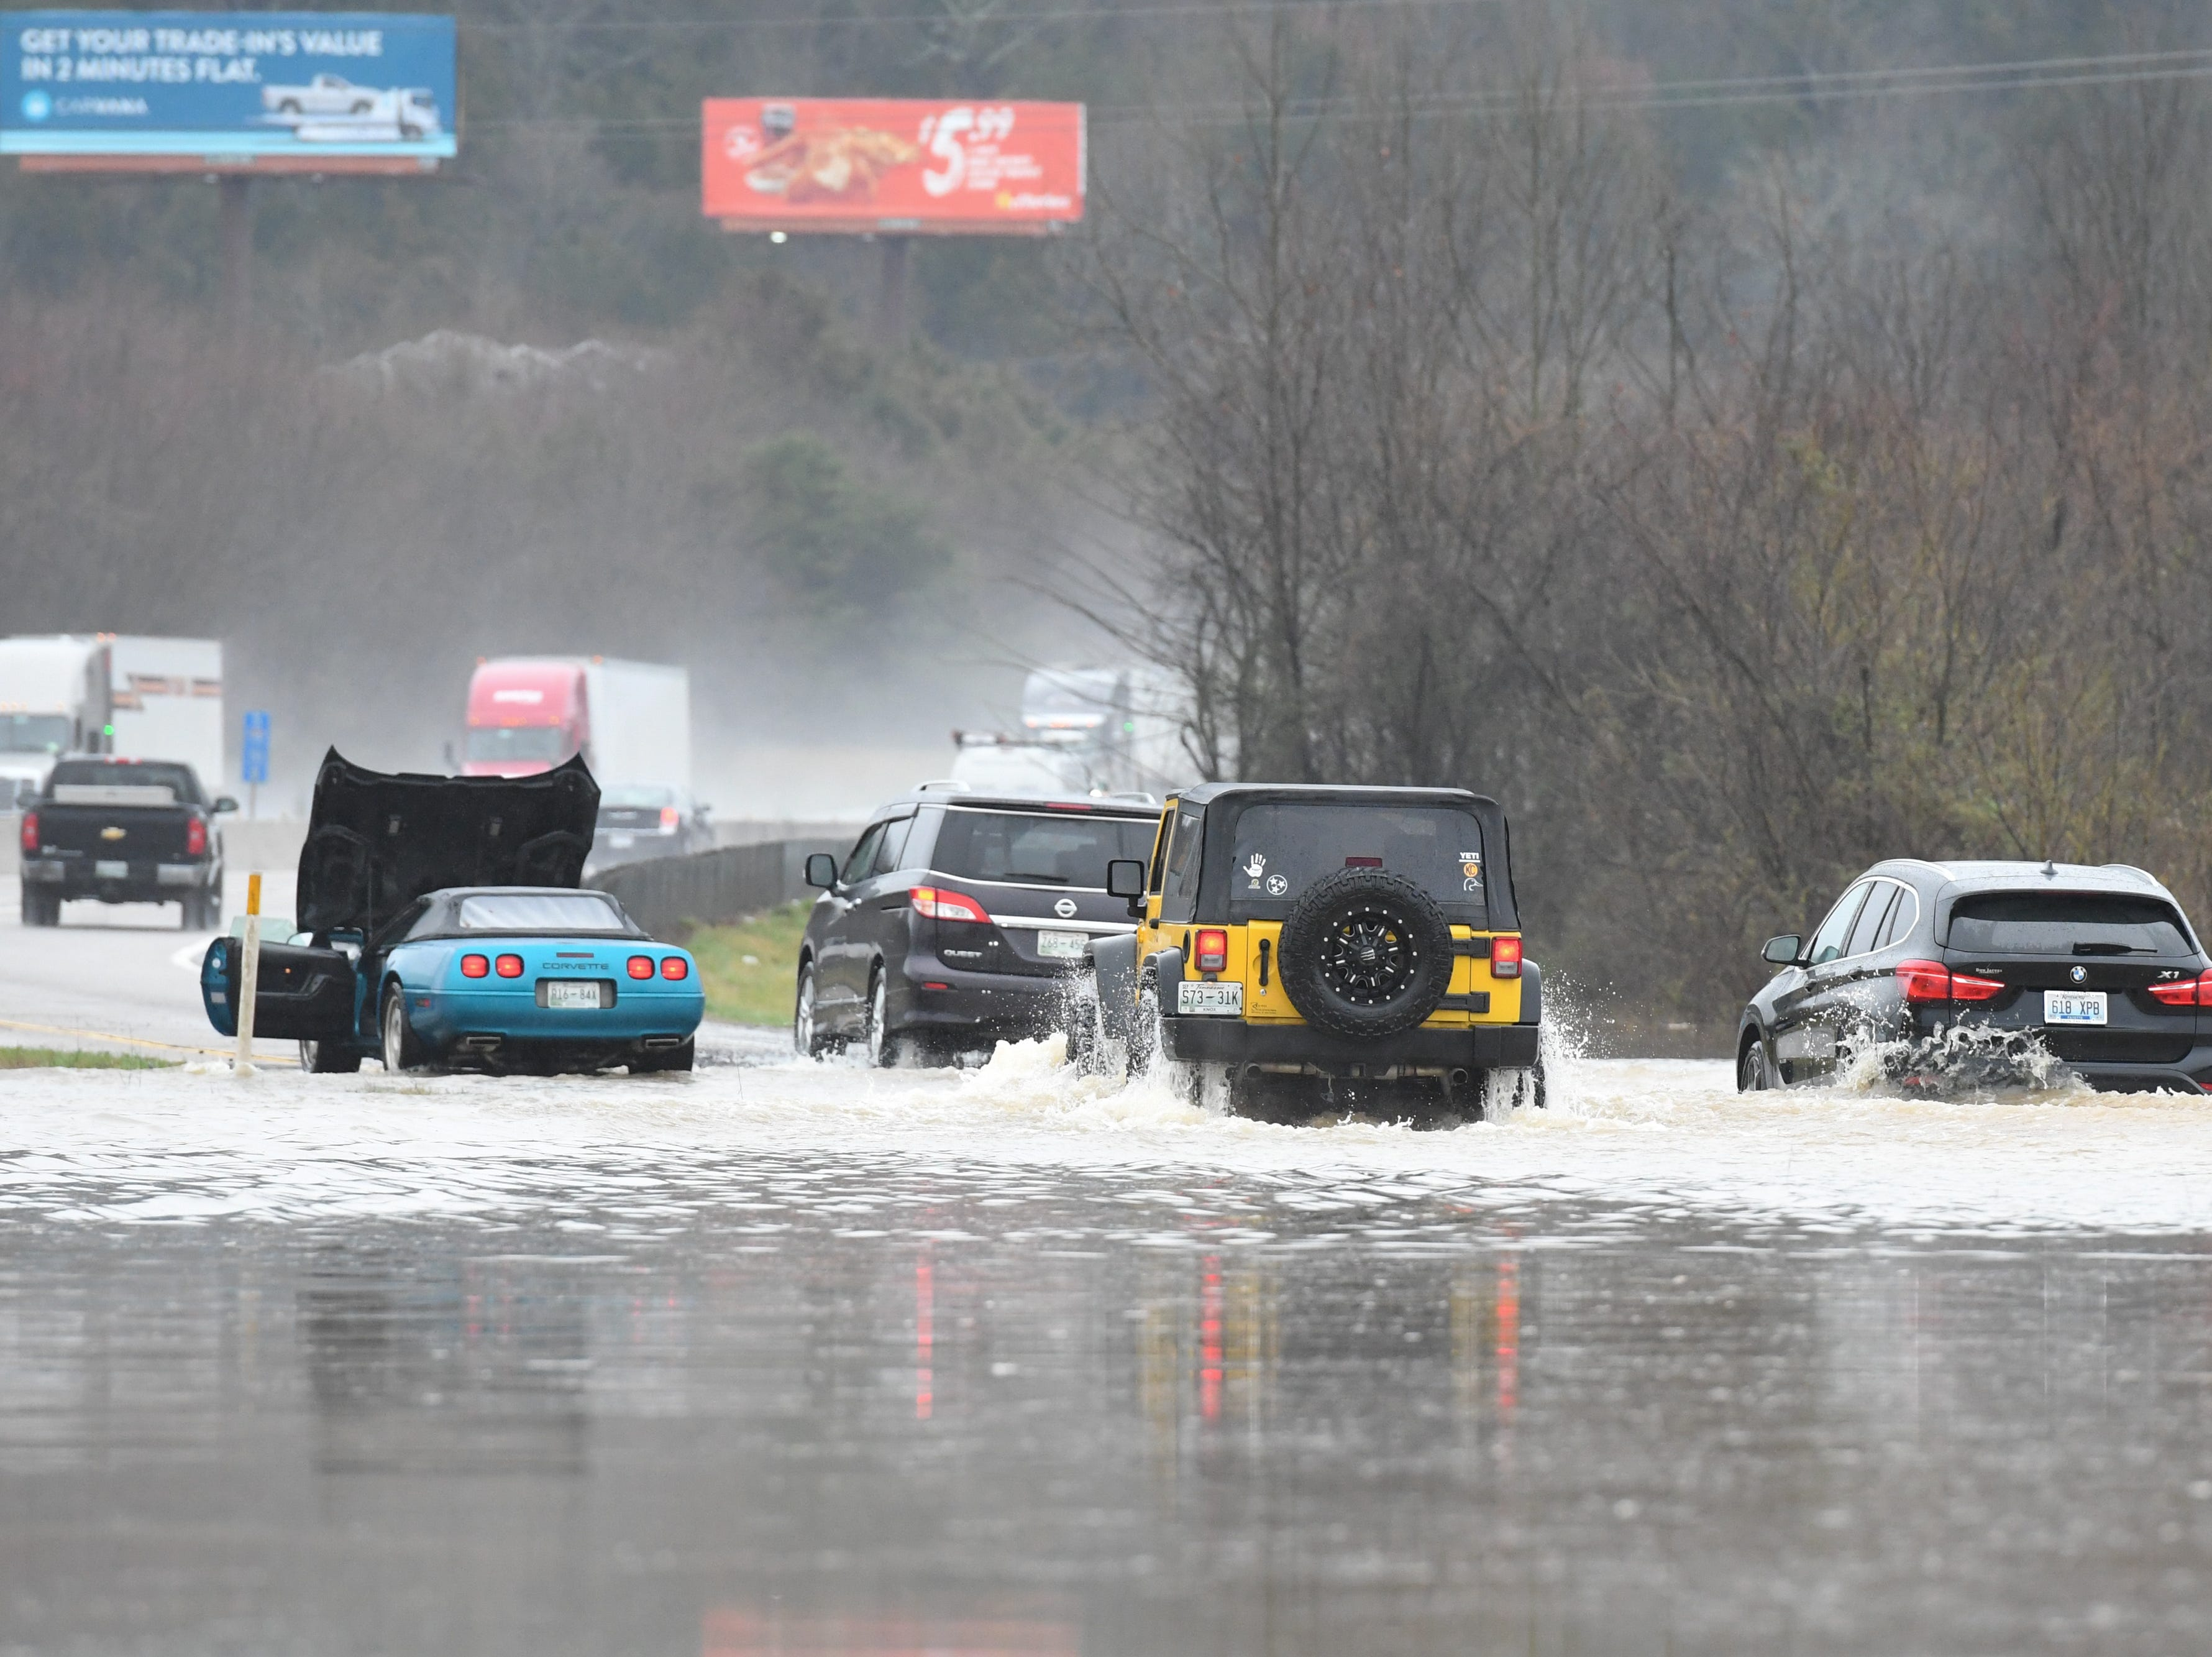 Motorists navigate the flooded entrance ramp to I-75 South from Emory Road in Knox County Saturday Feb. 23, 2019. The Knoxville area could see between 2 and 3 inches of rain through the weekend.